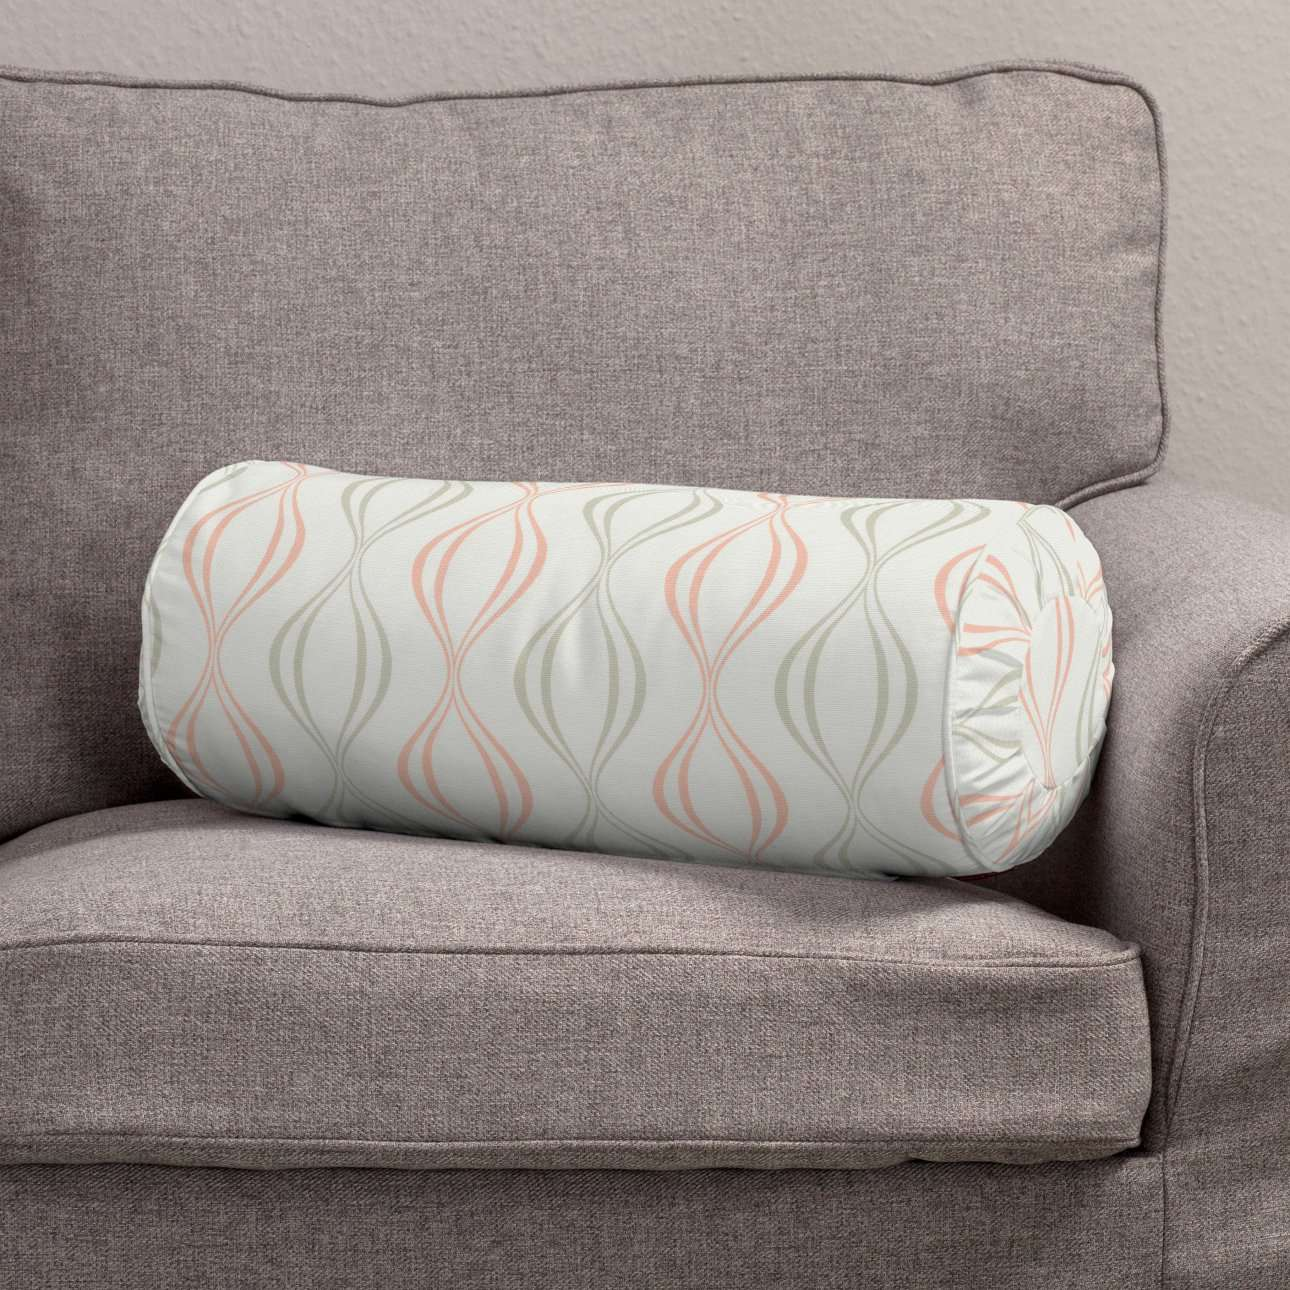 Bolster cushion with pleats in collection Geometric, fabric: 141-49